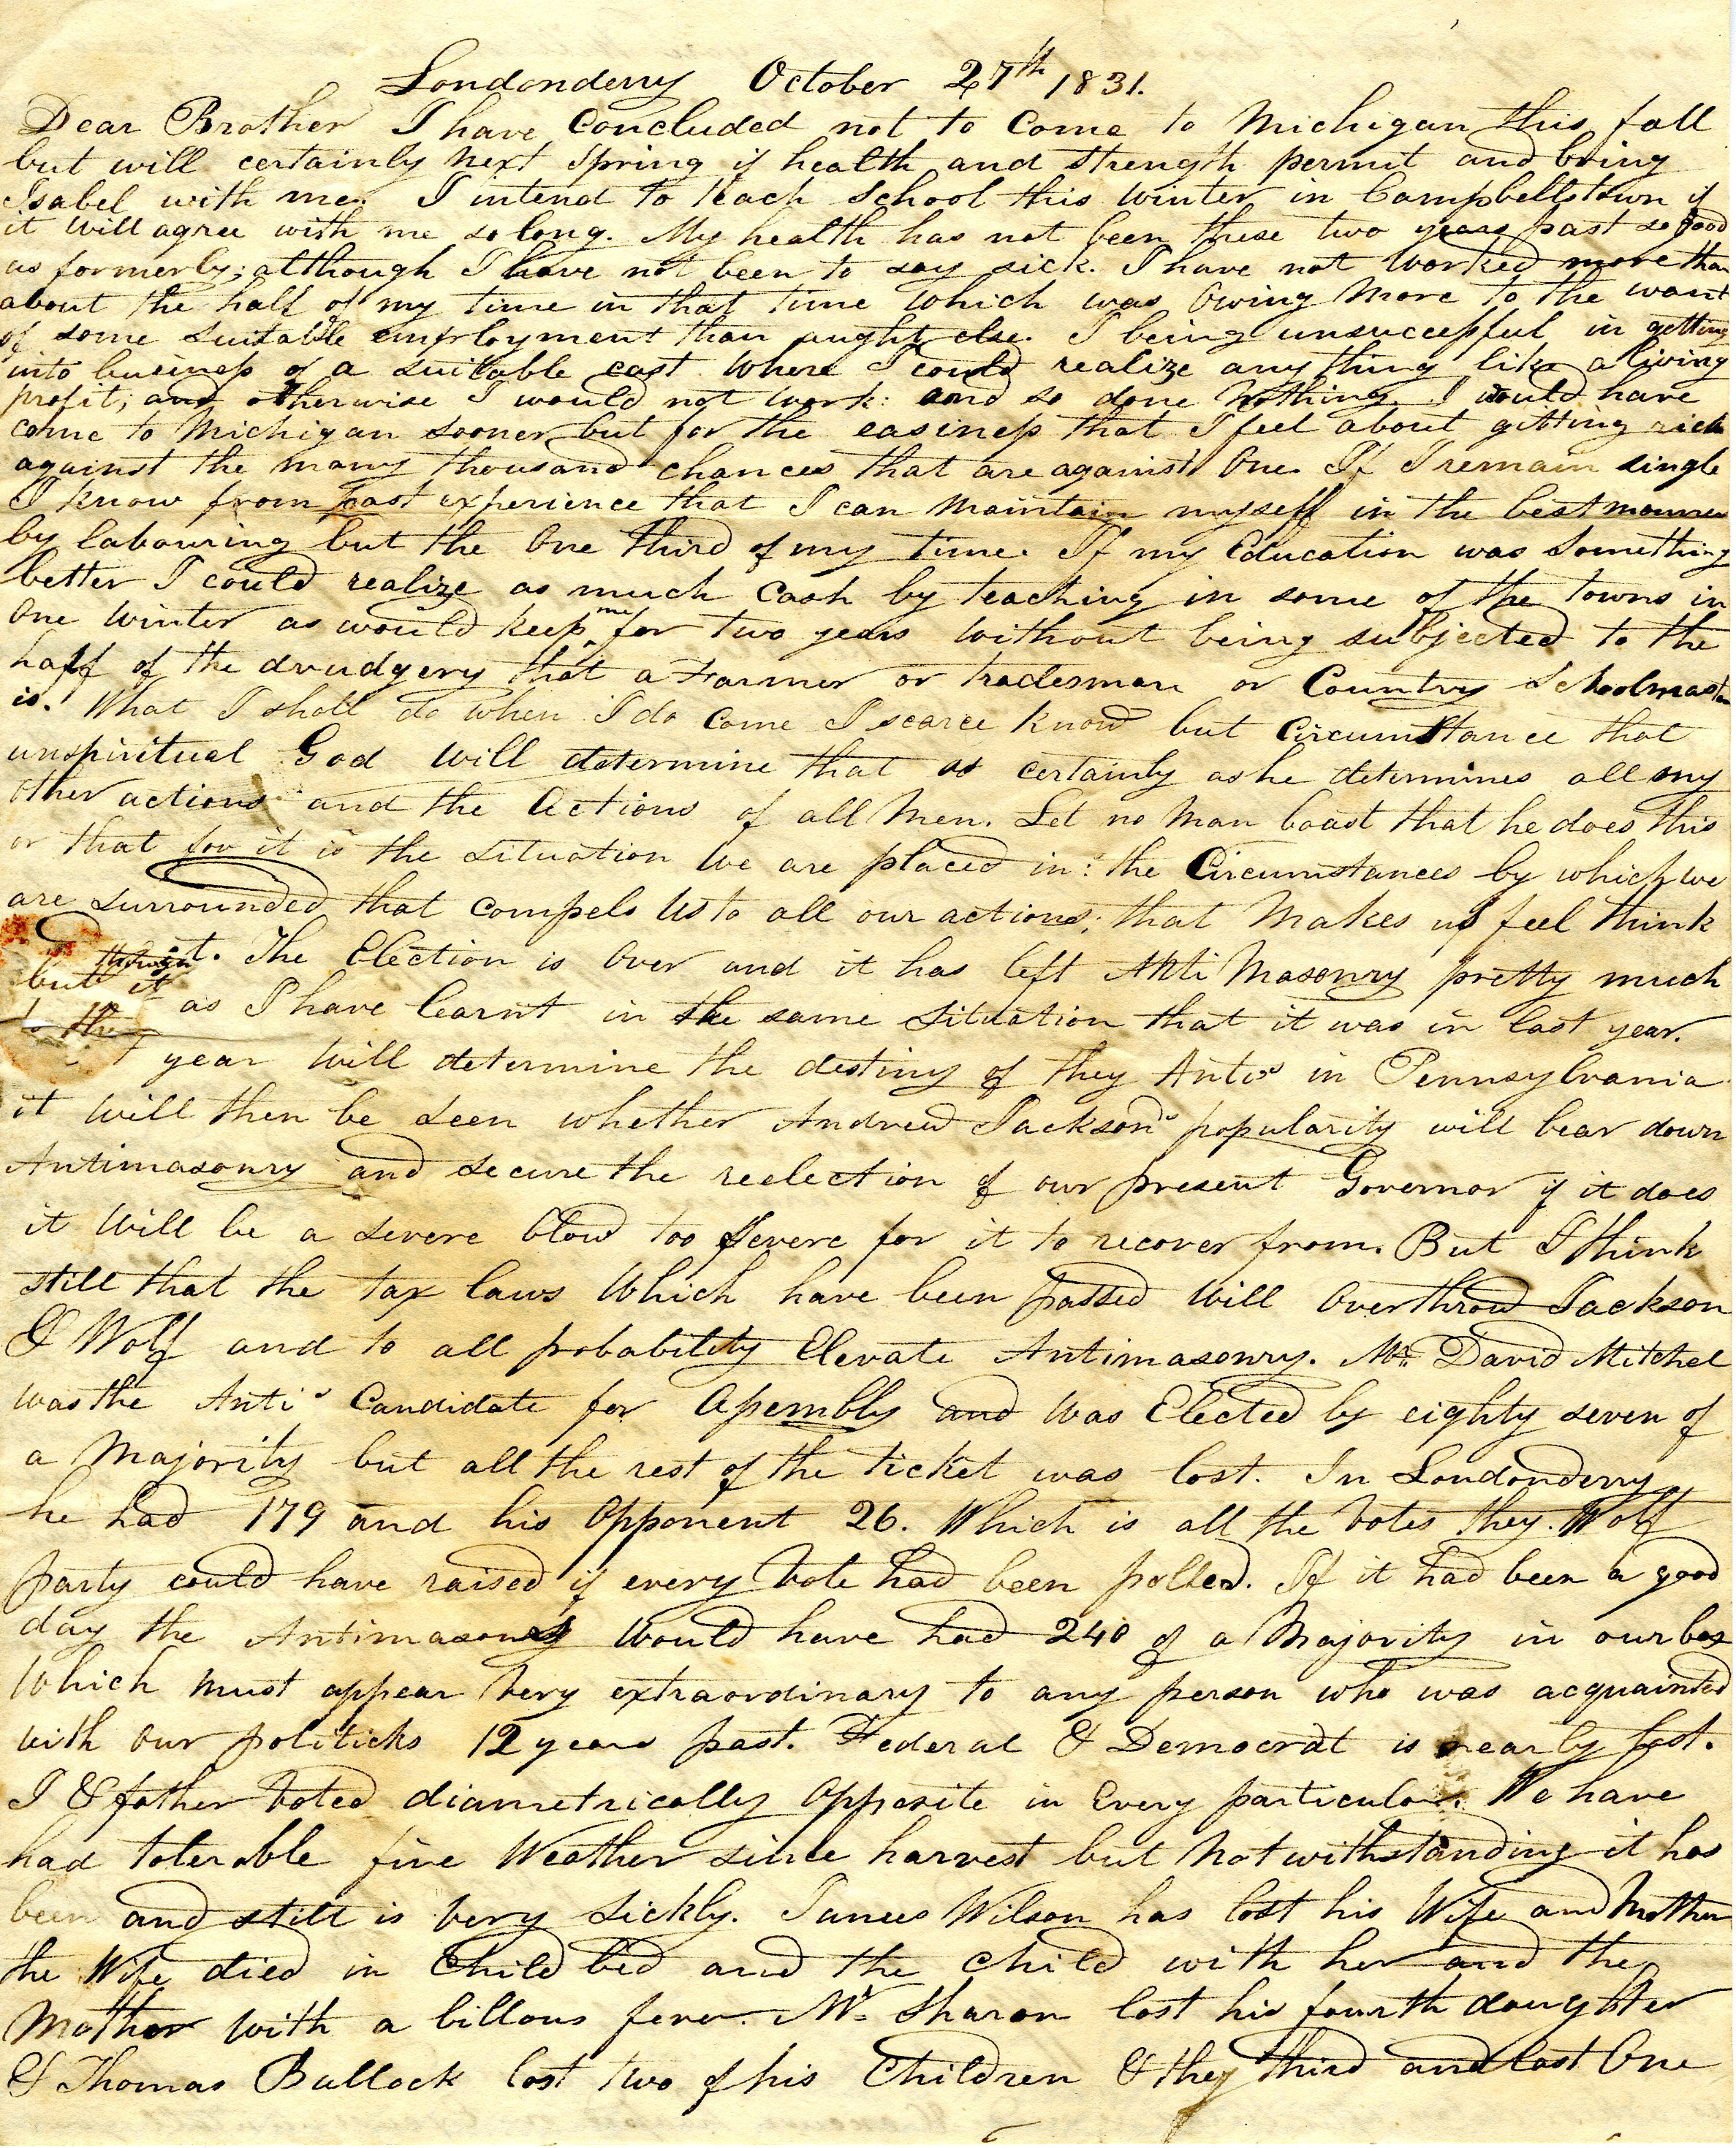 Letter From William Geddes to John Geddes, October 27, 1831 image